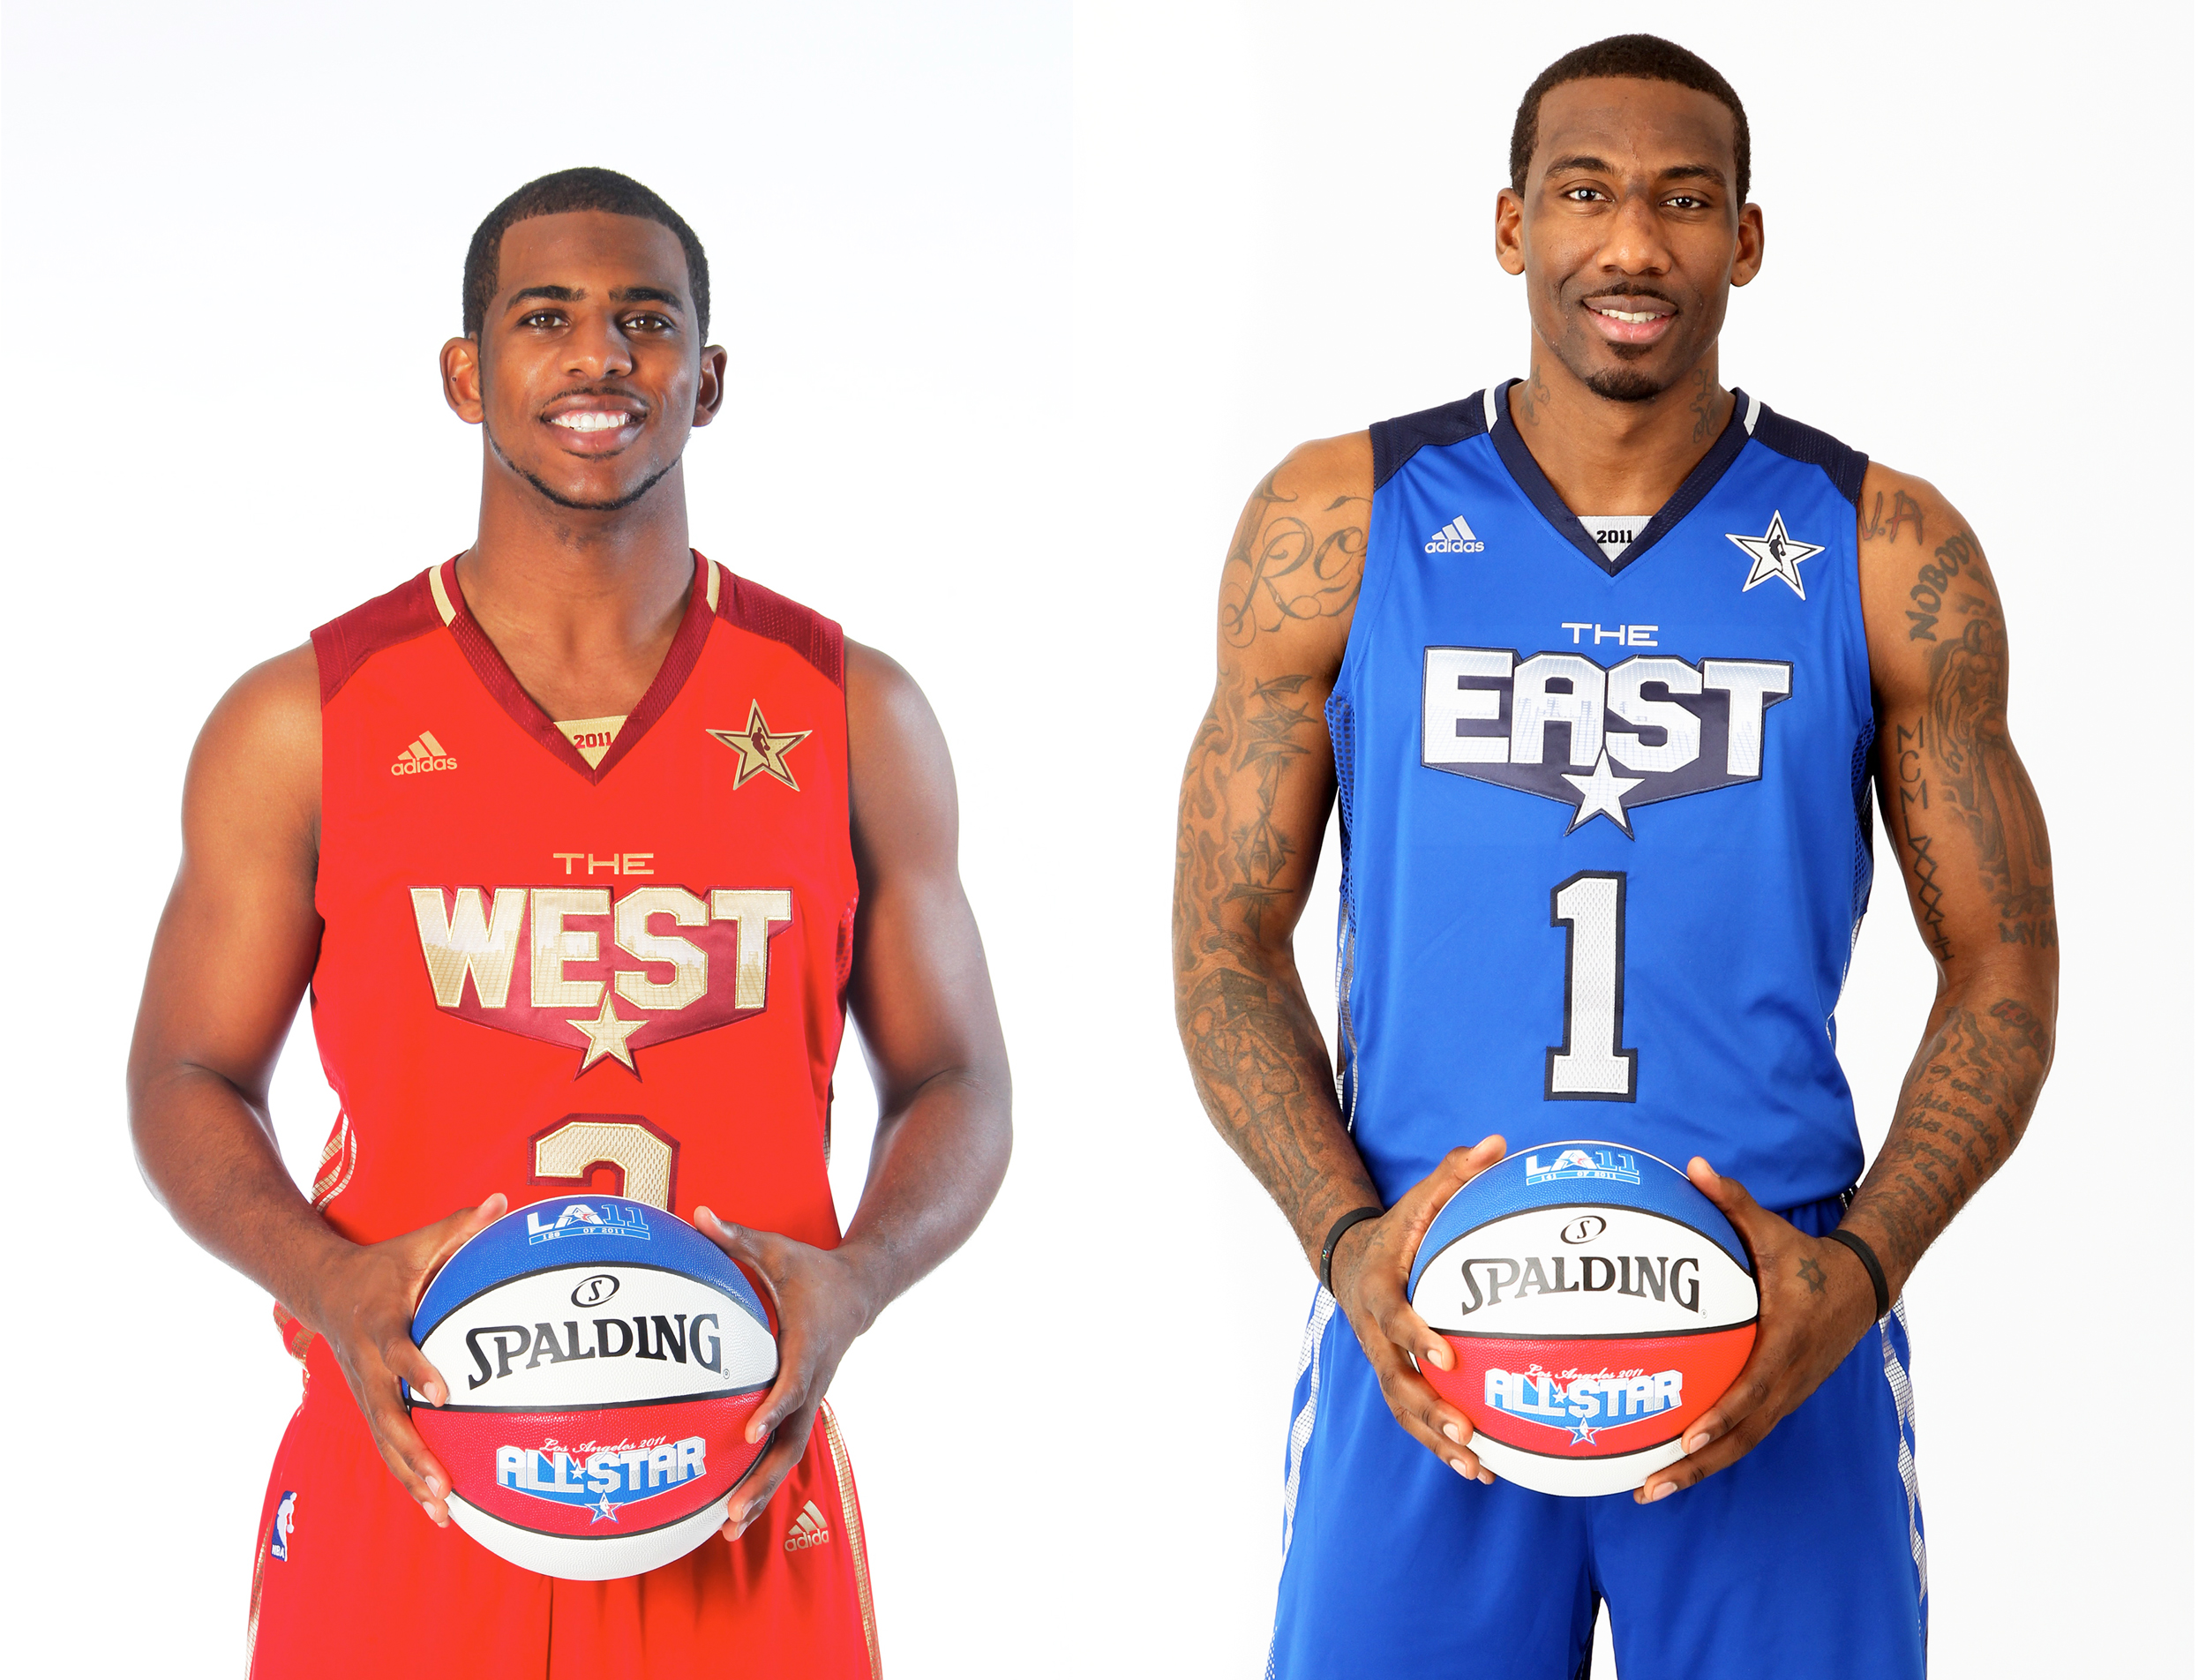 Chris Paul #3 of the New Orleans Hornets and Amar'e Stoudemire #1 of the New York Knicks pose in their All-Star uniform.